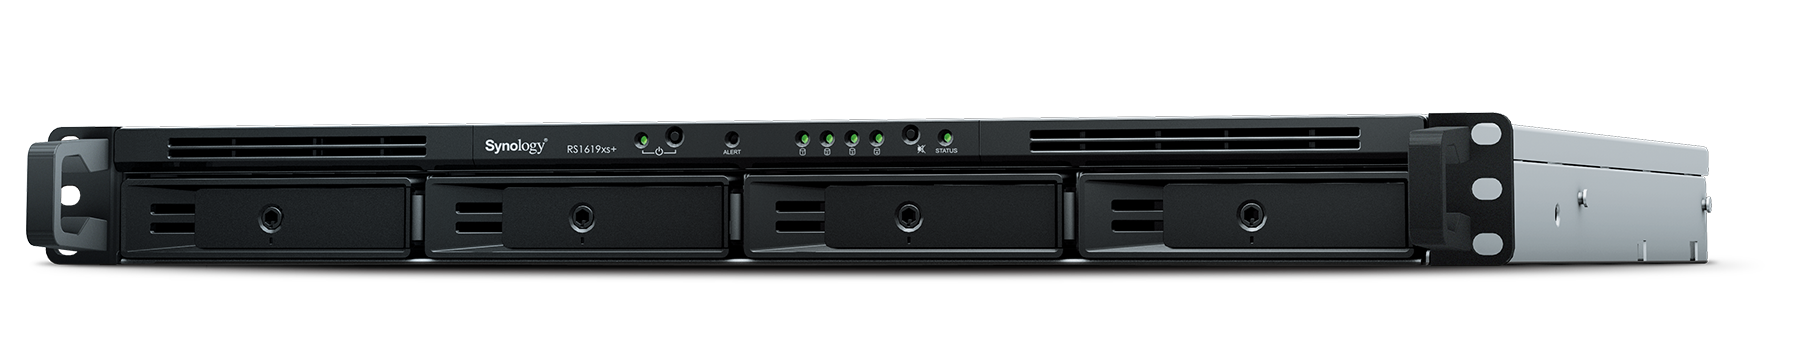 RackStation RS1619xs+ | Synology Inc